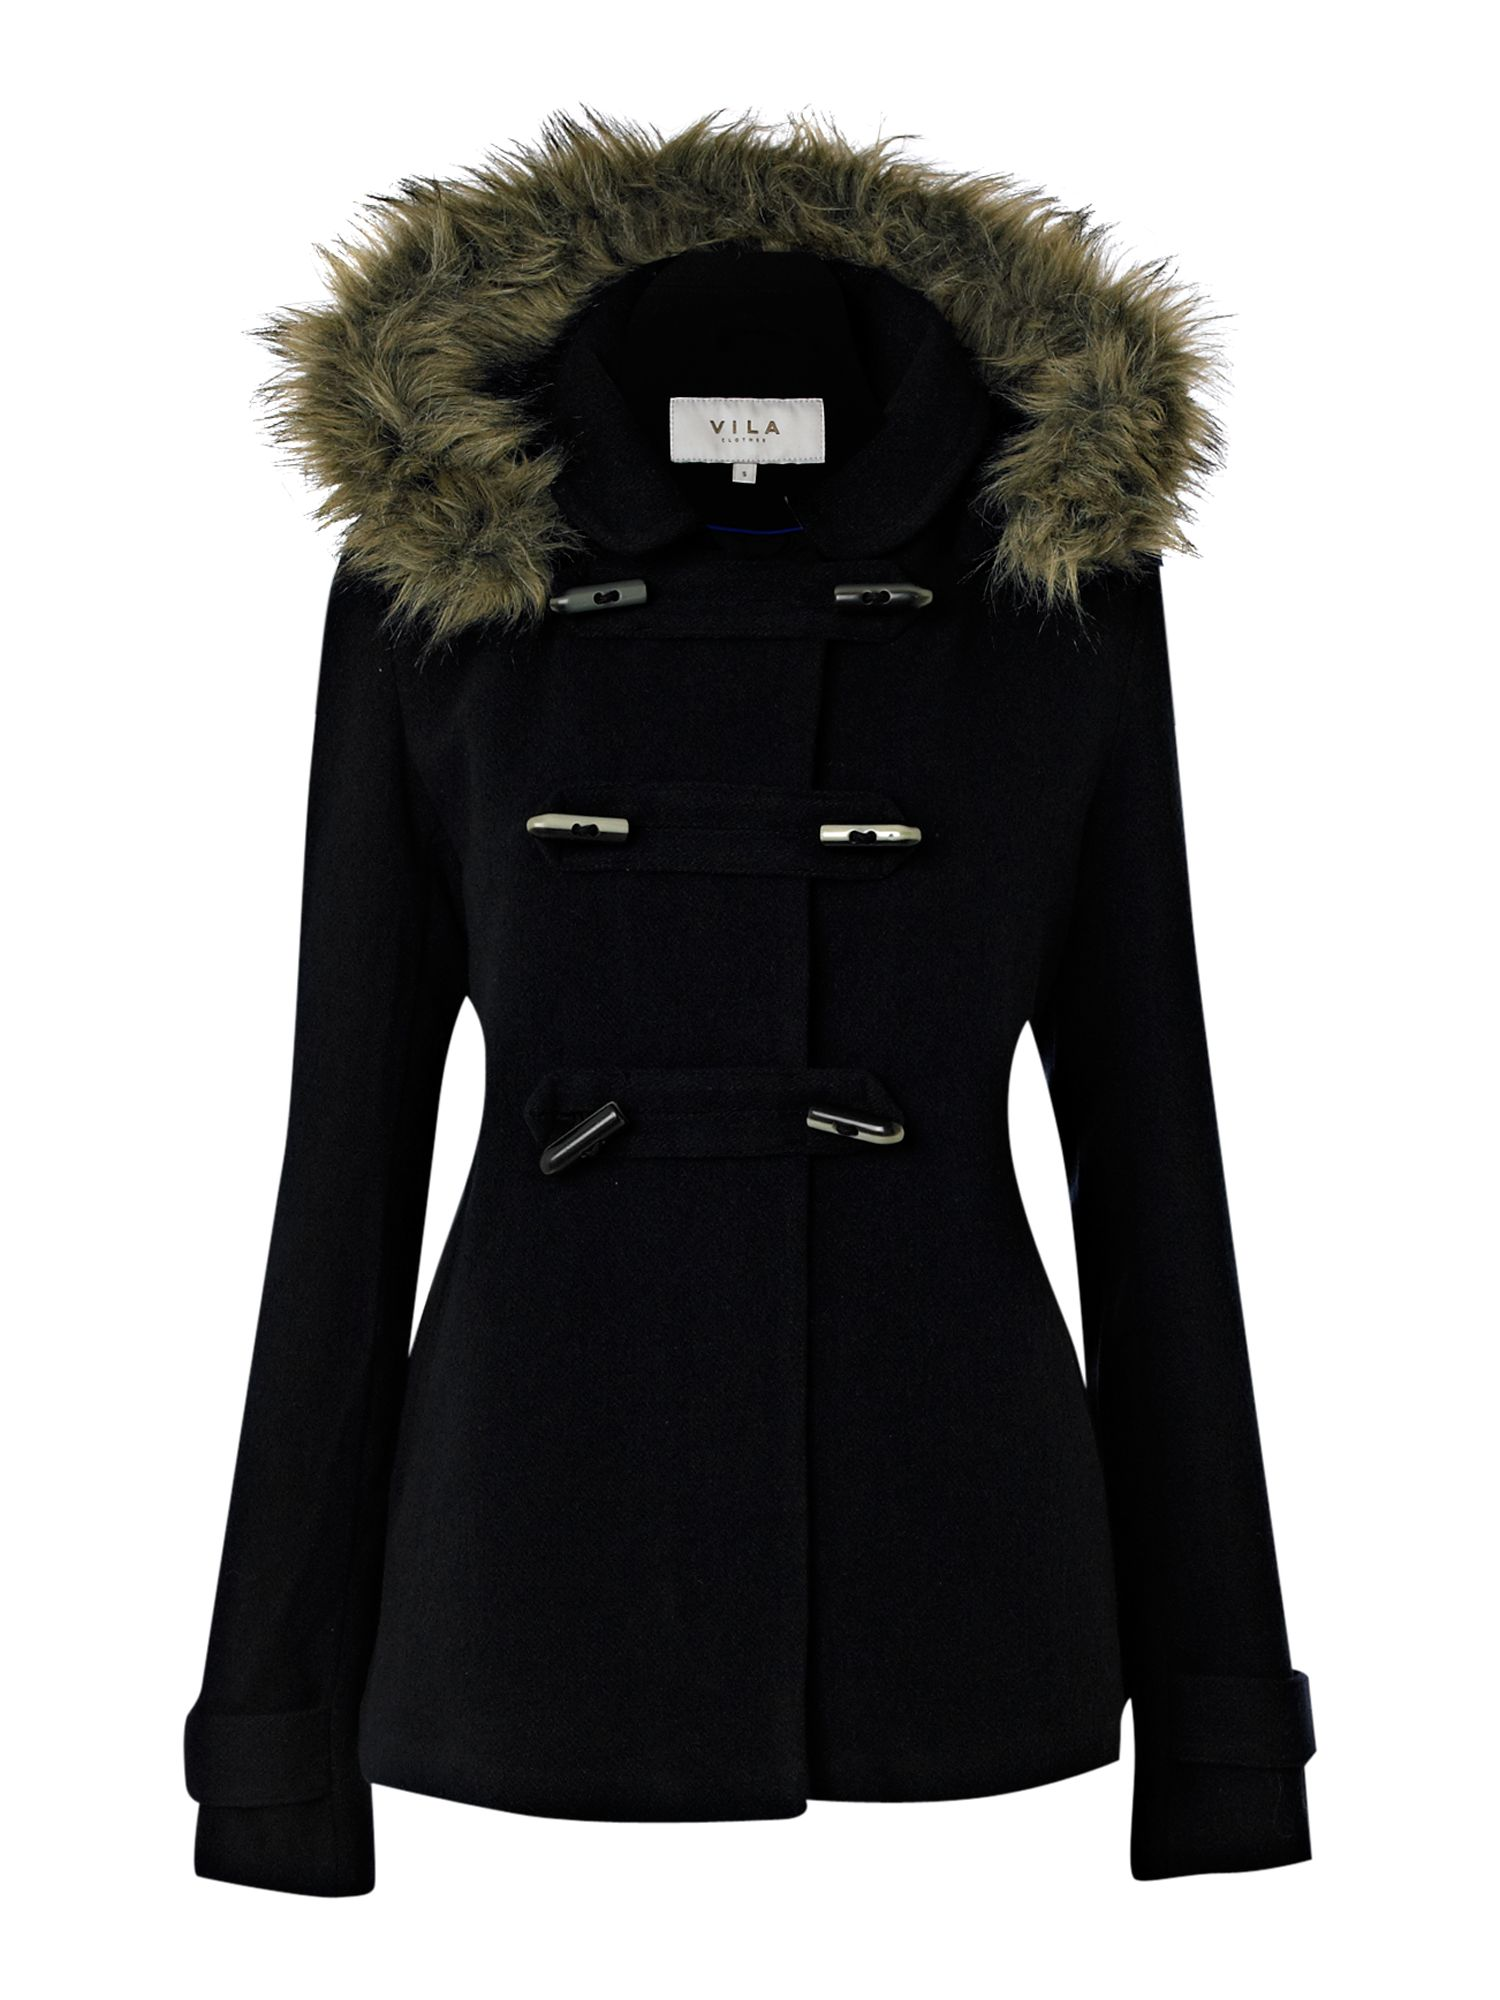 Cheap online clothing stores » Womens duffle coat with fur hood